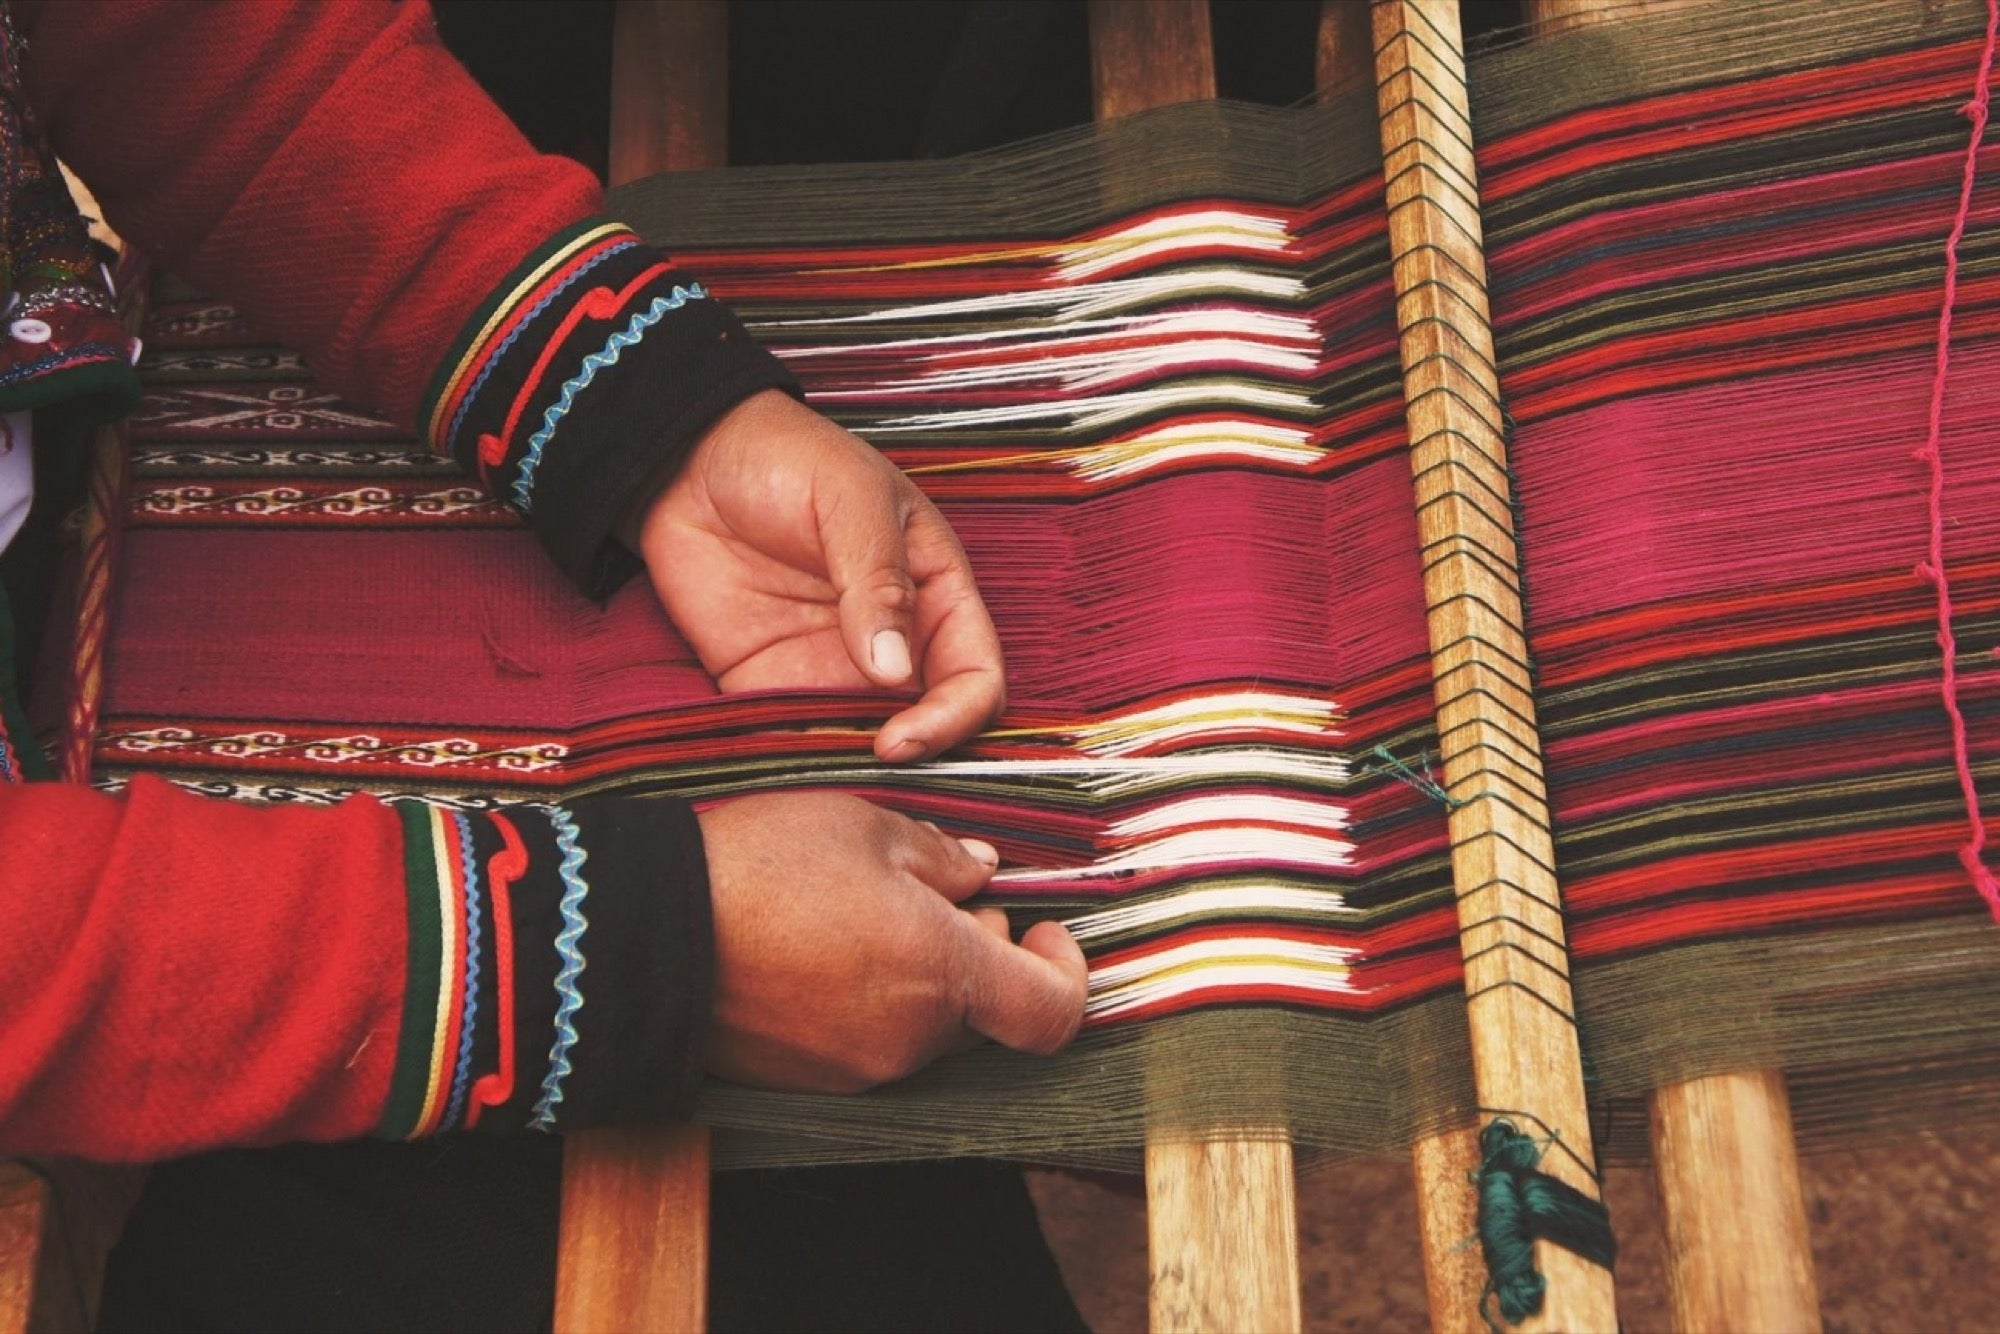 India's Handloom Sector in last 16 months – A Pandemic Story on National Handloom Day